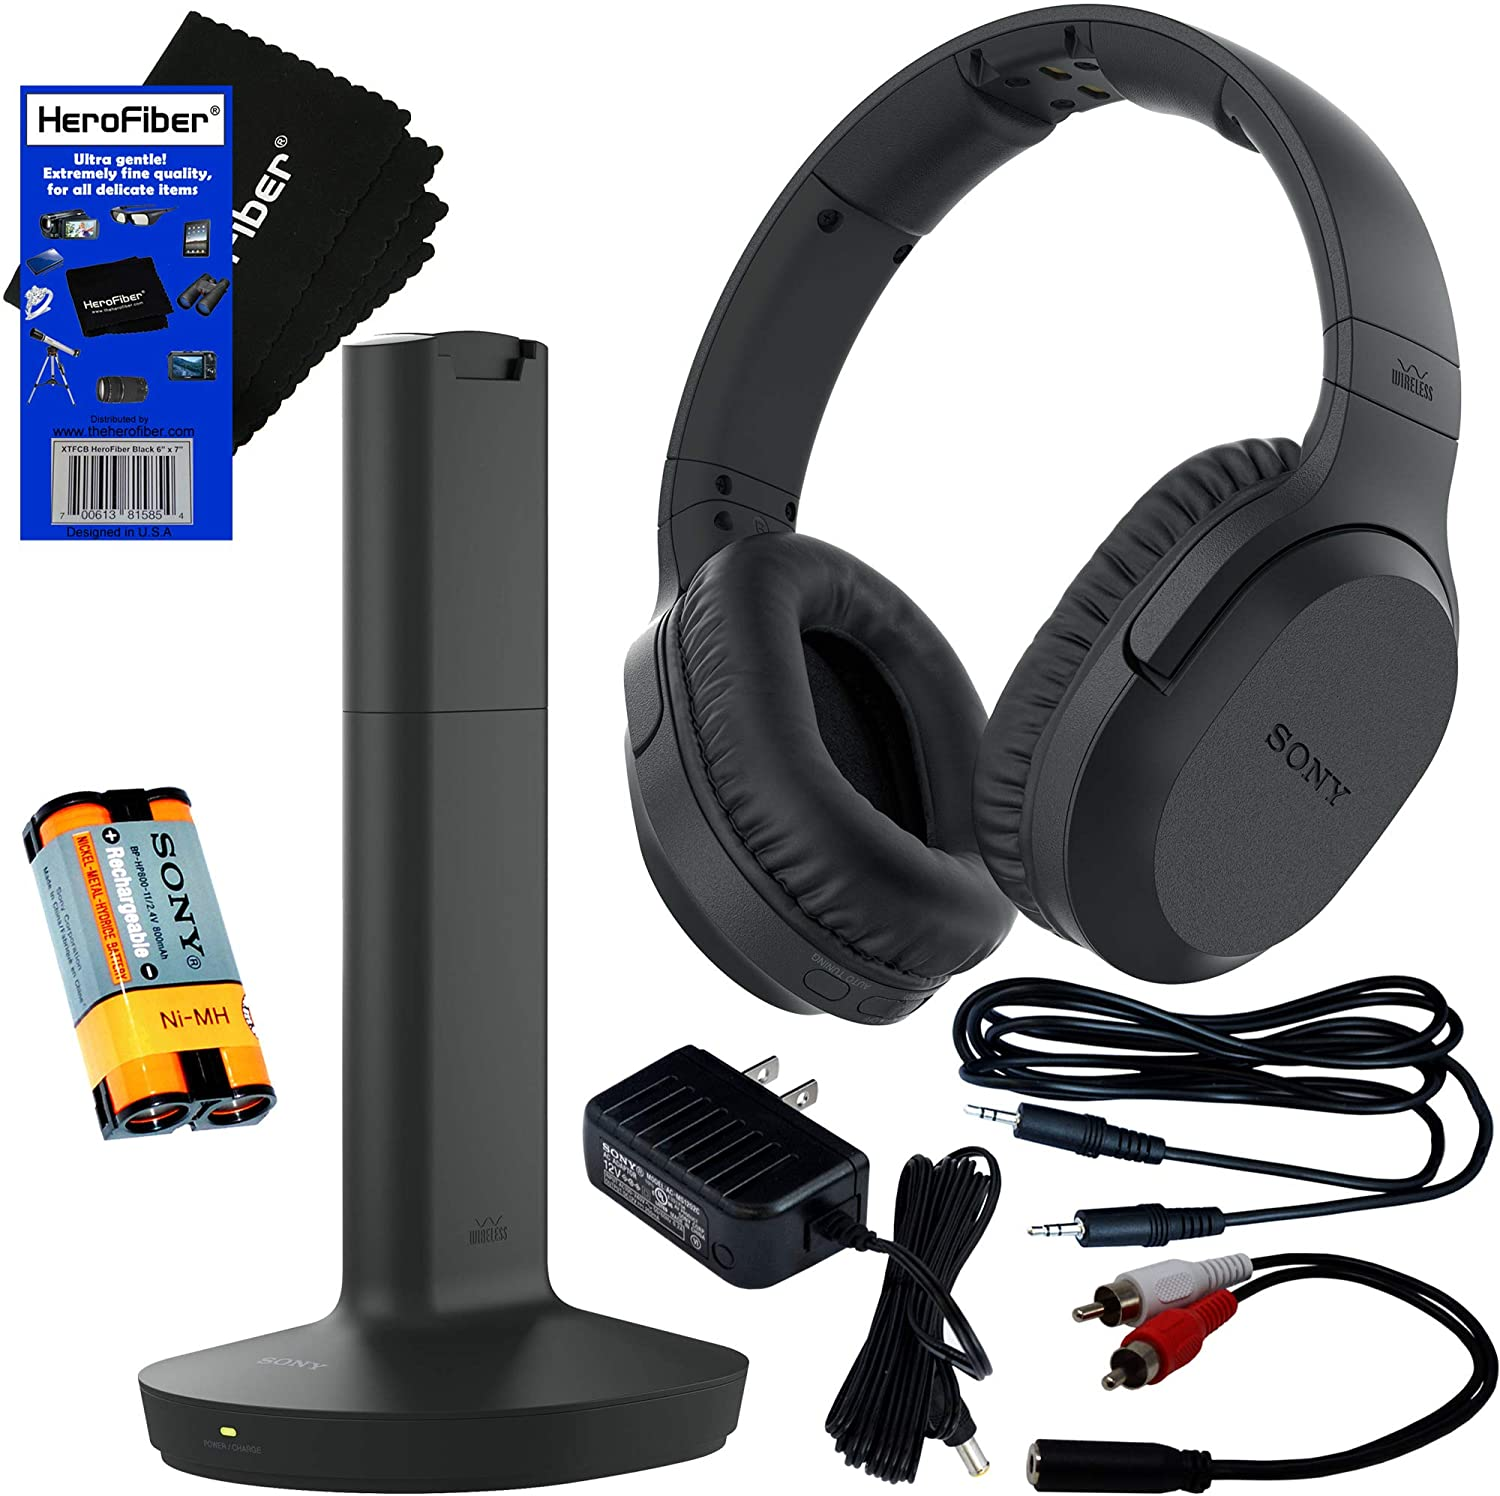 Sony Wireless Over-Ear Noise Reduction Headphones (WHRF400R) with Transmitter Dock (TMRRF400) + Sony Rechargeable Battery + Connecting Cables + AC Adaptor + Hero Fiber Cleaning Cloth